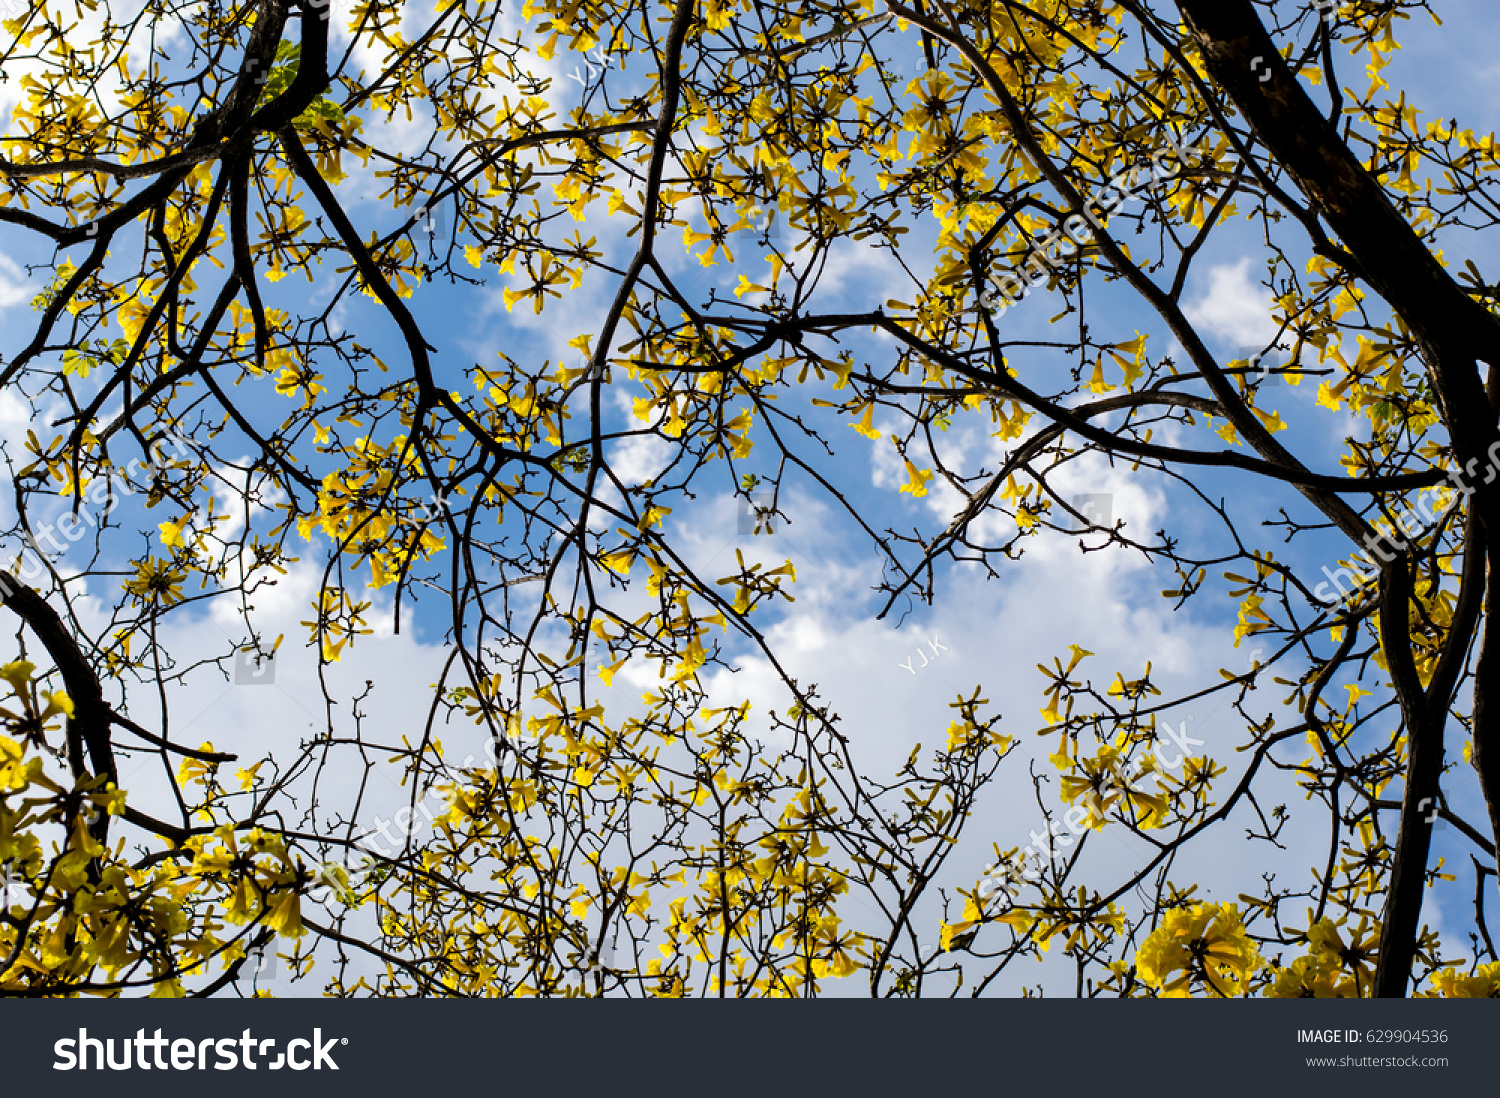 Yellow flower on tree with blue sky ez canvas id 629904536 izmirmasajfo